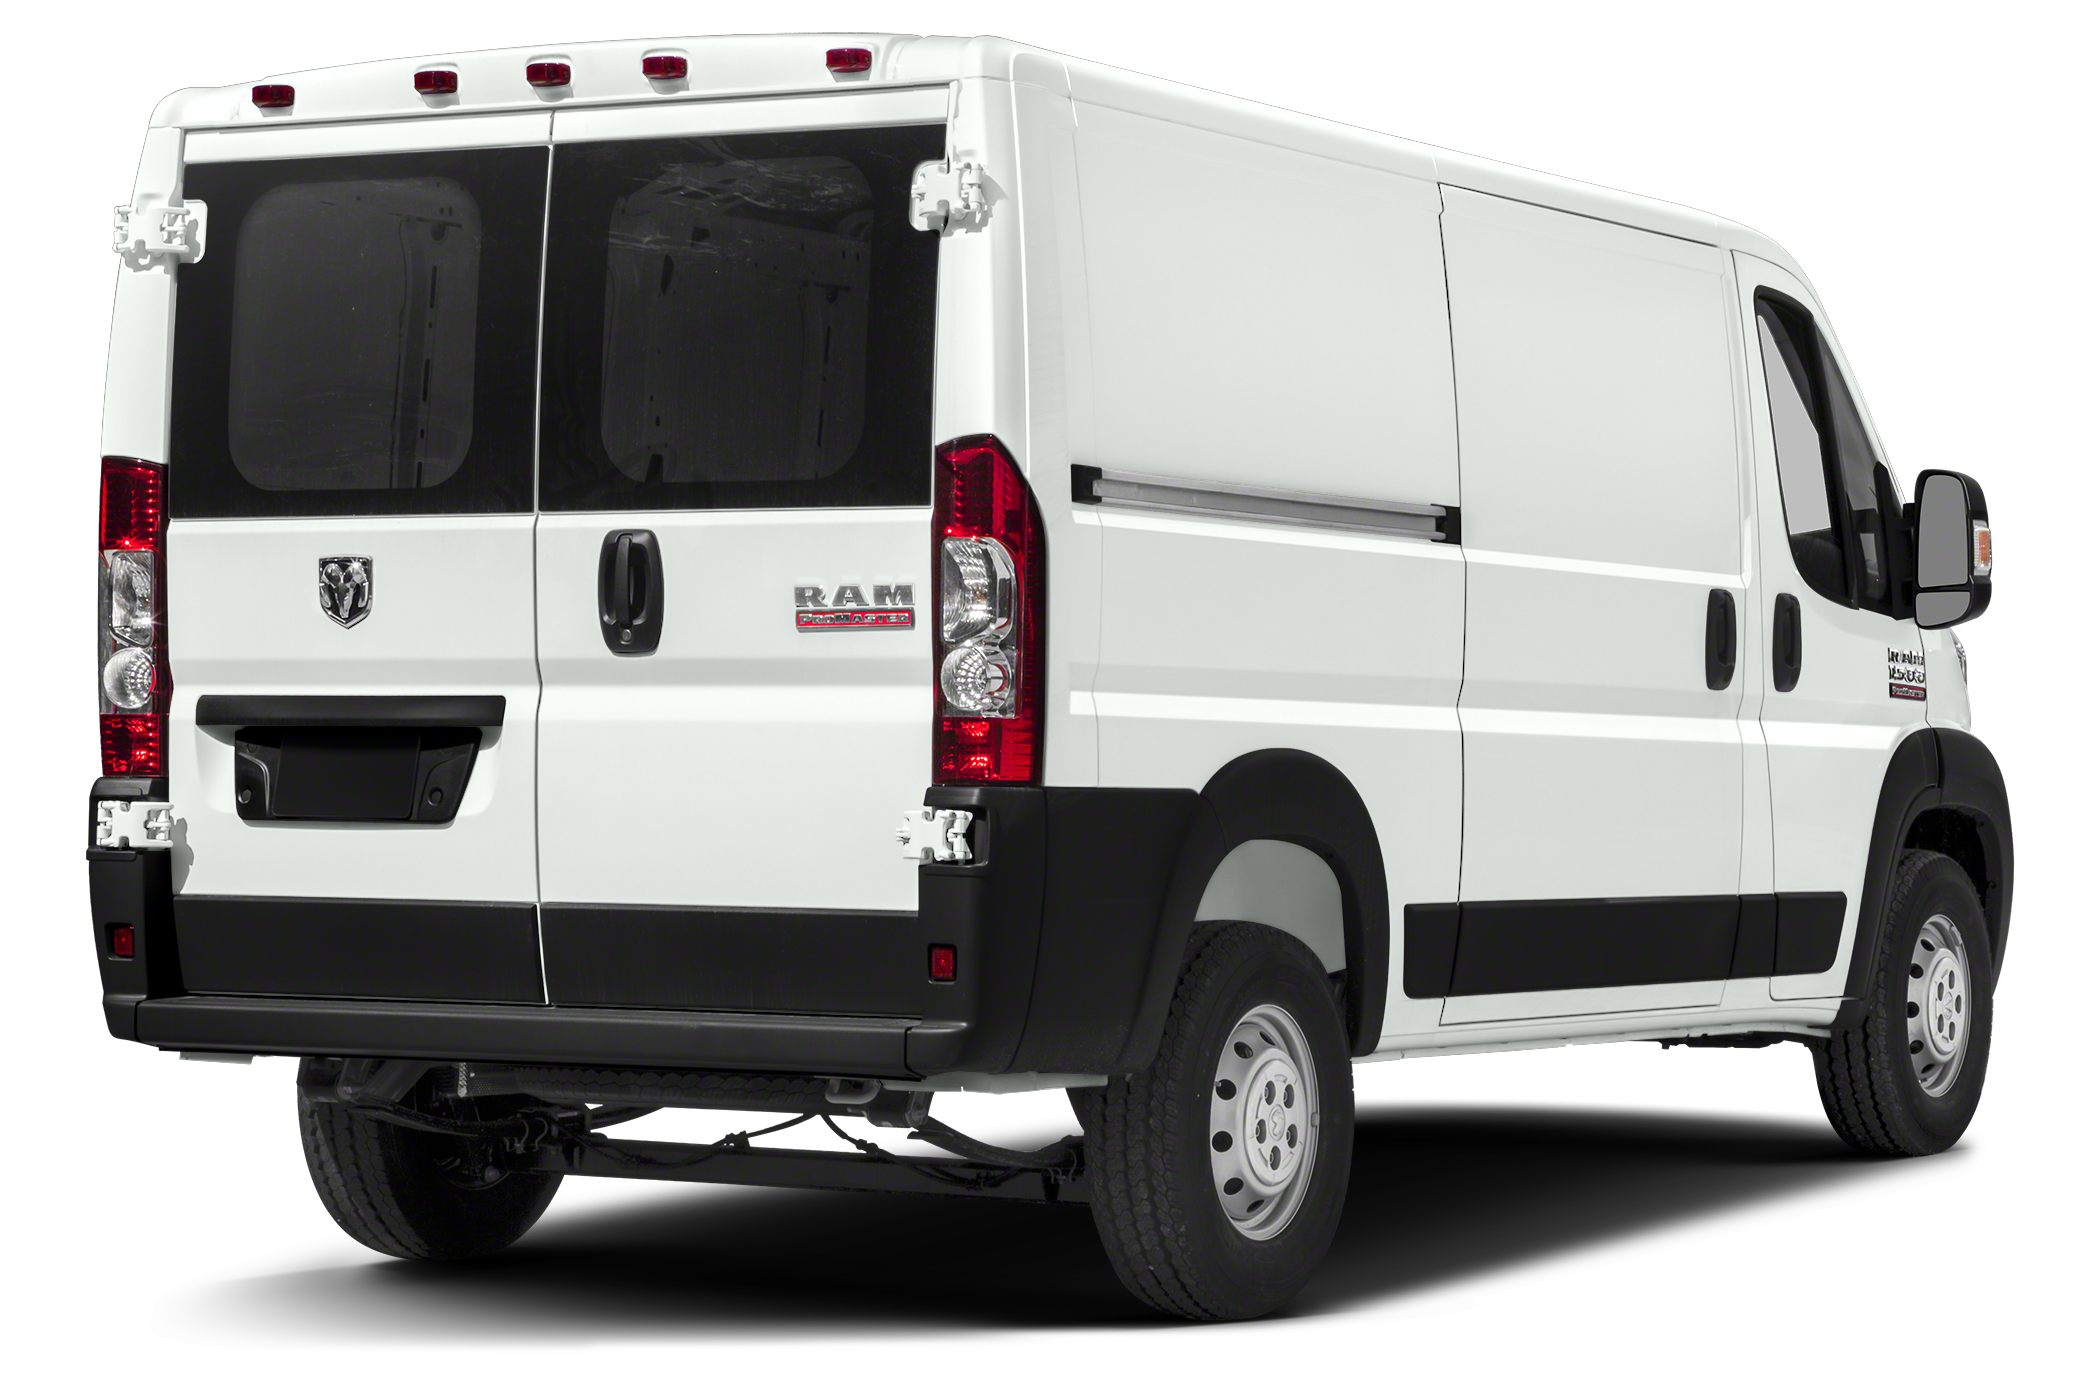 2017 RAM ProMaster 1500 136 WB Cargo CARFAX One-Owner Clean CARFAX White 2017 Ram ProMaster 1500